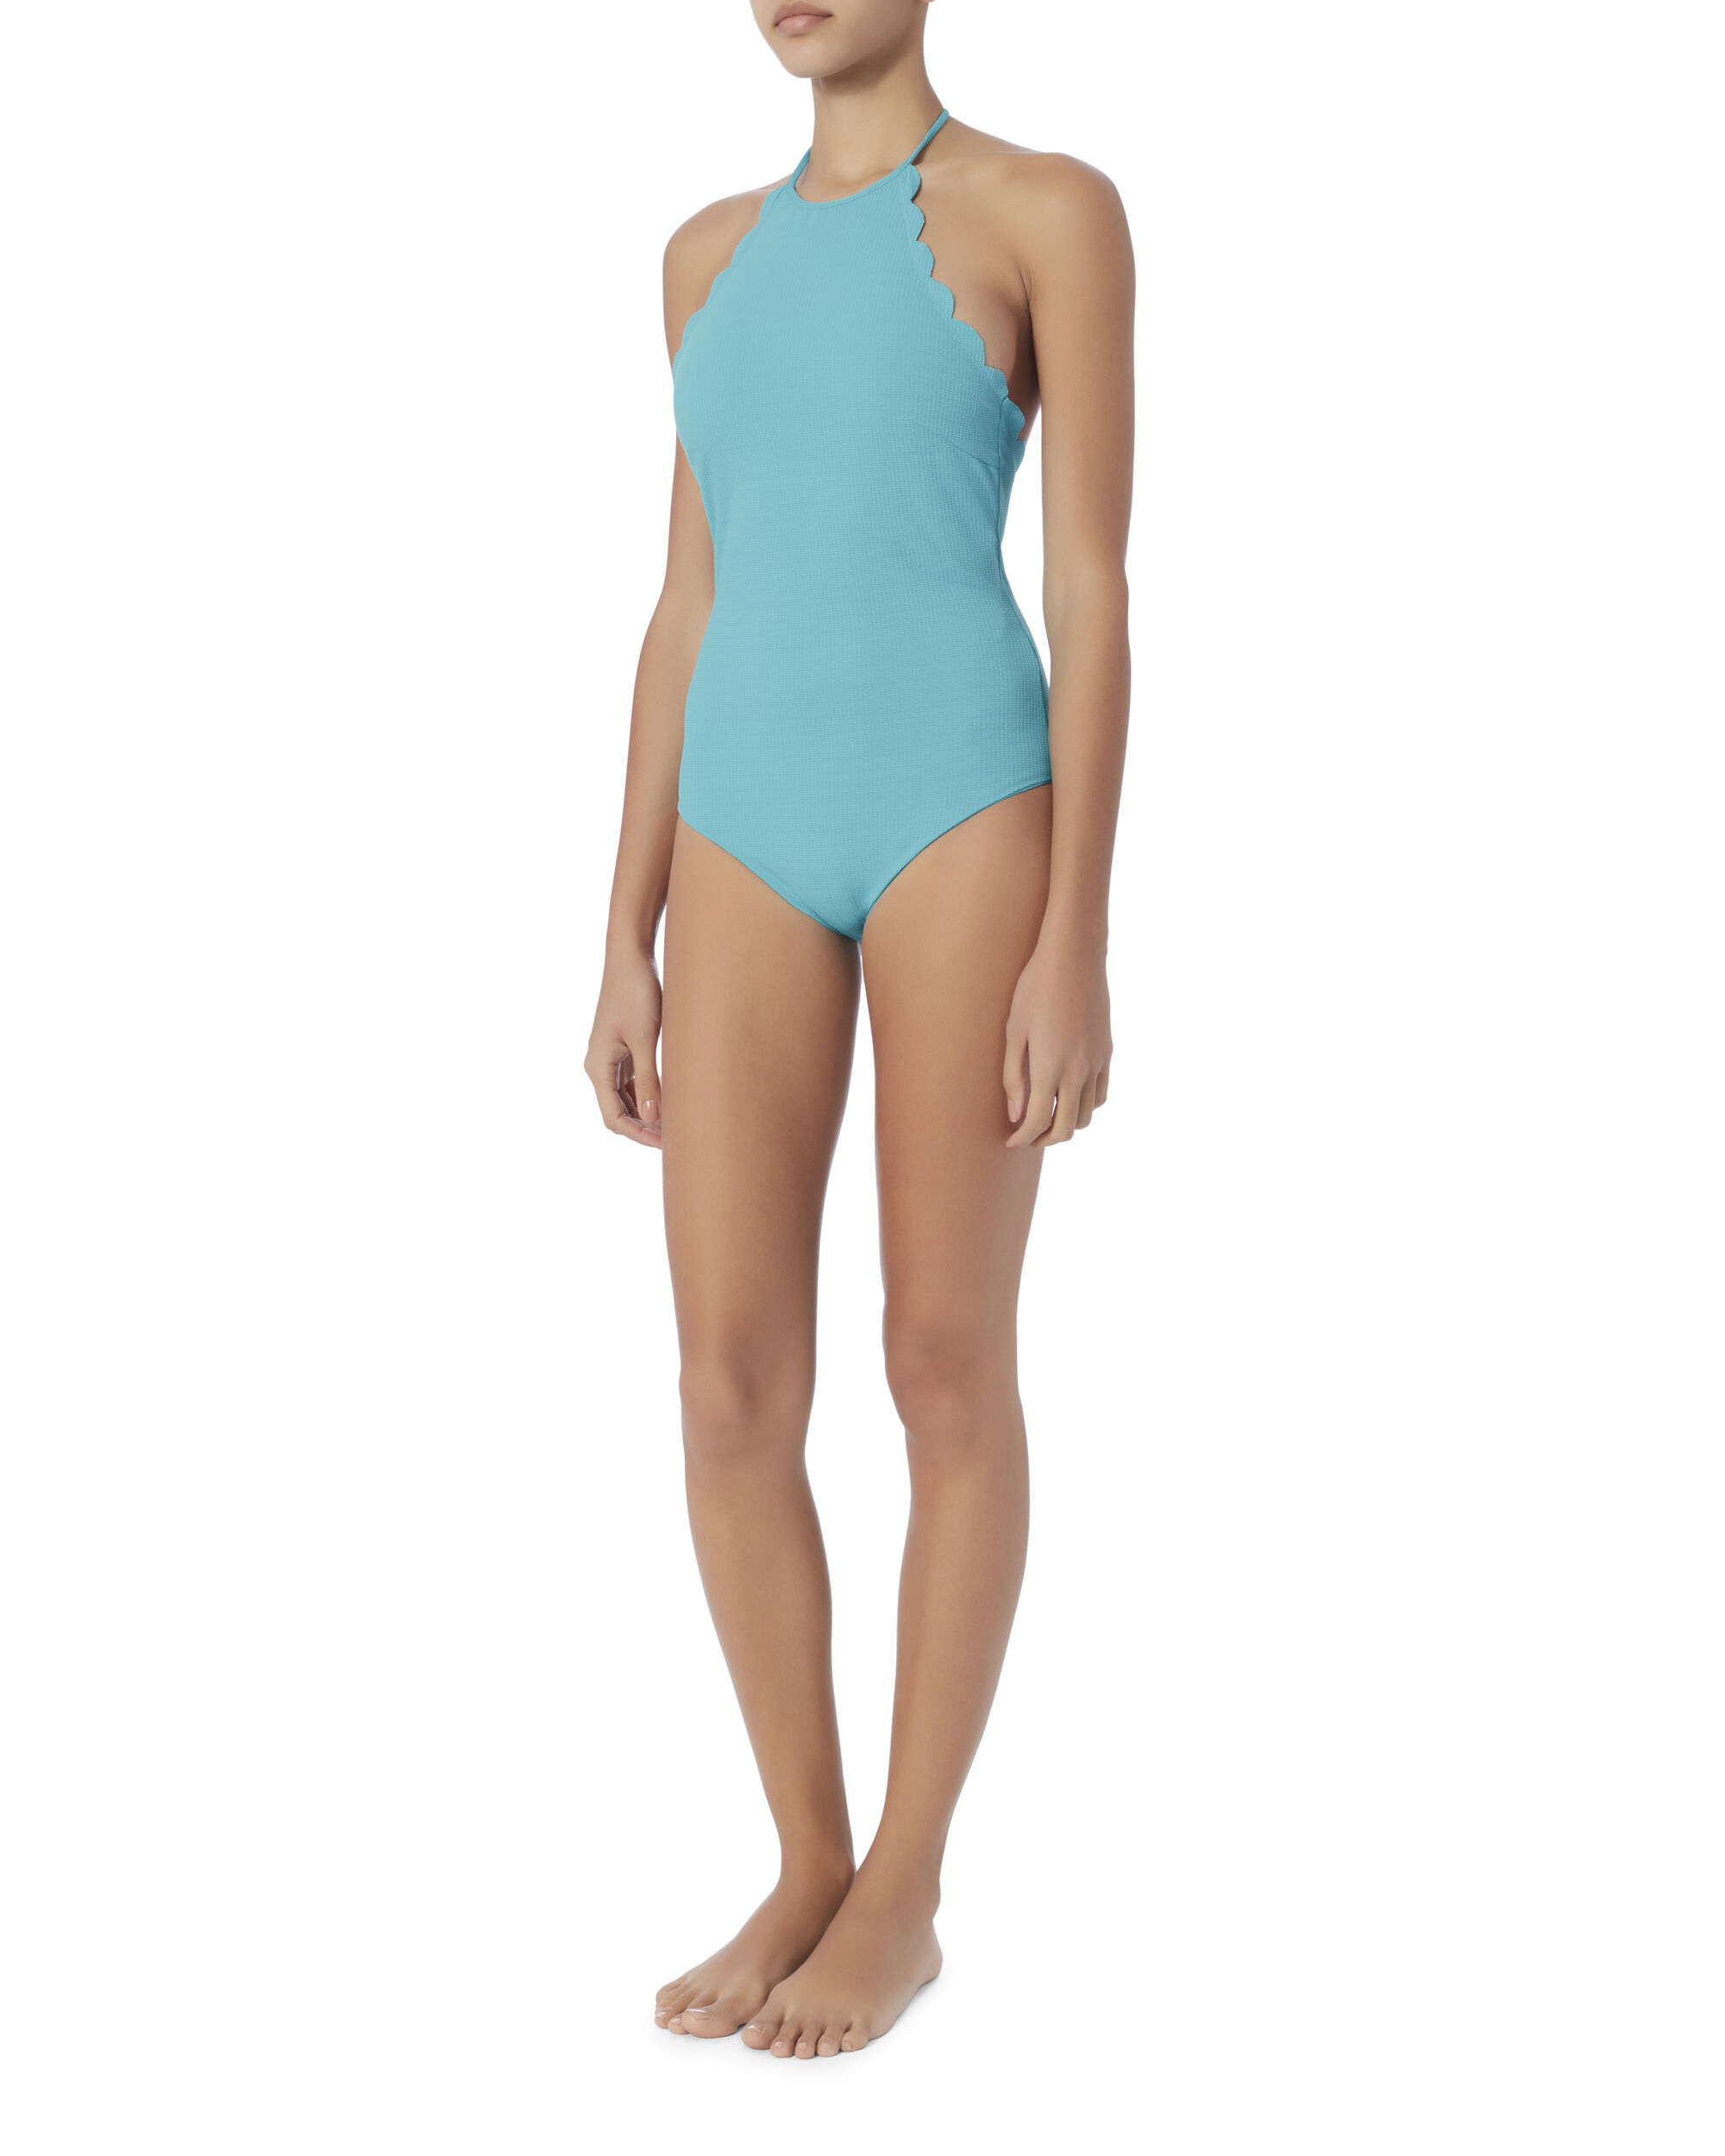 Mott Turquoise Maillot, TURQUOISE, hi-res